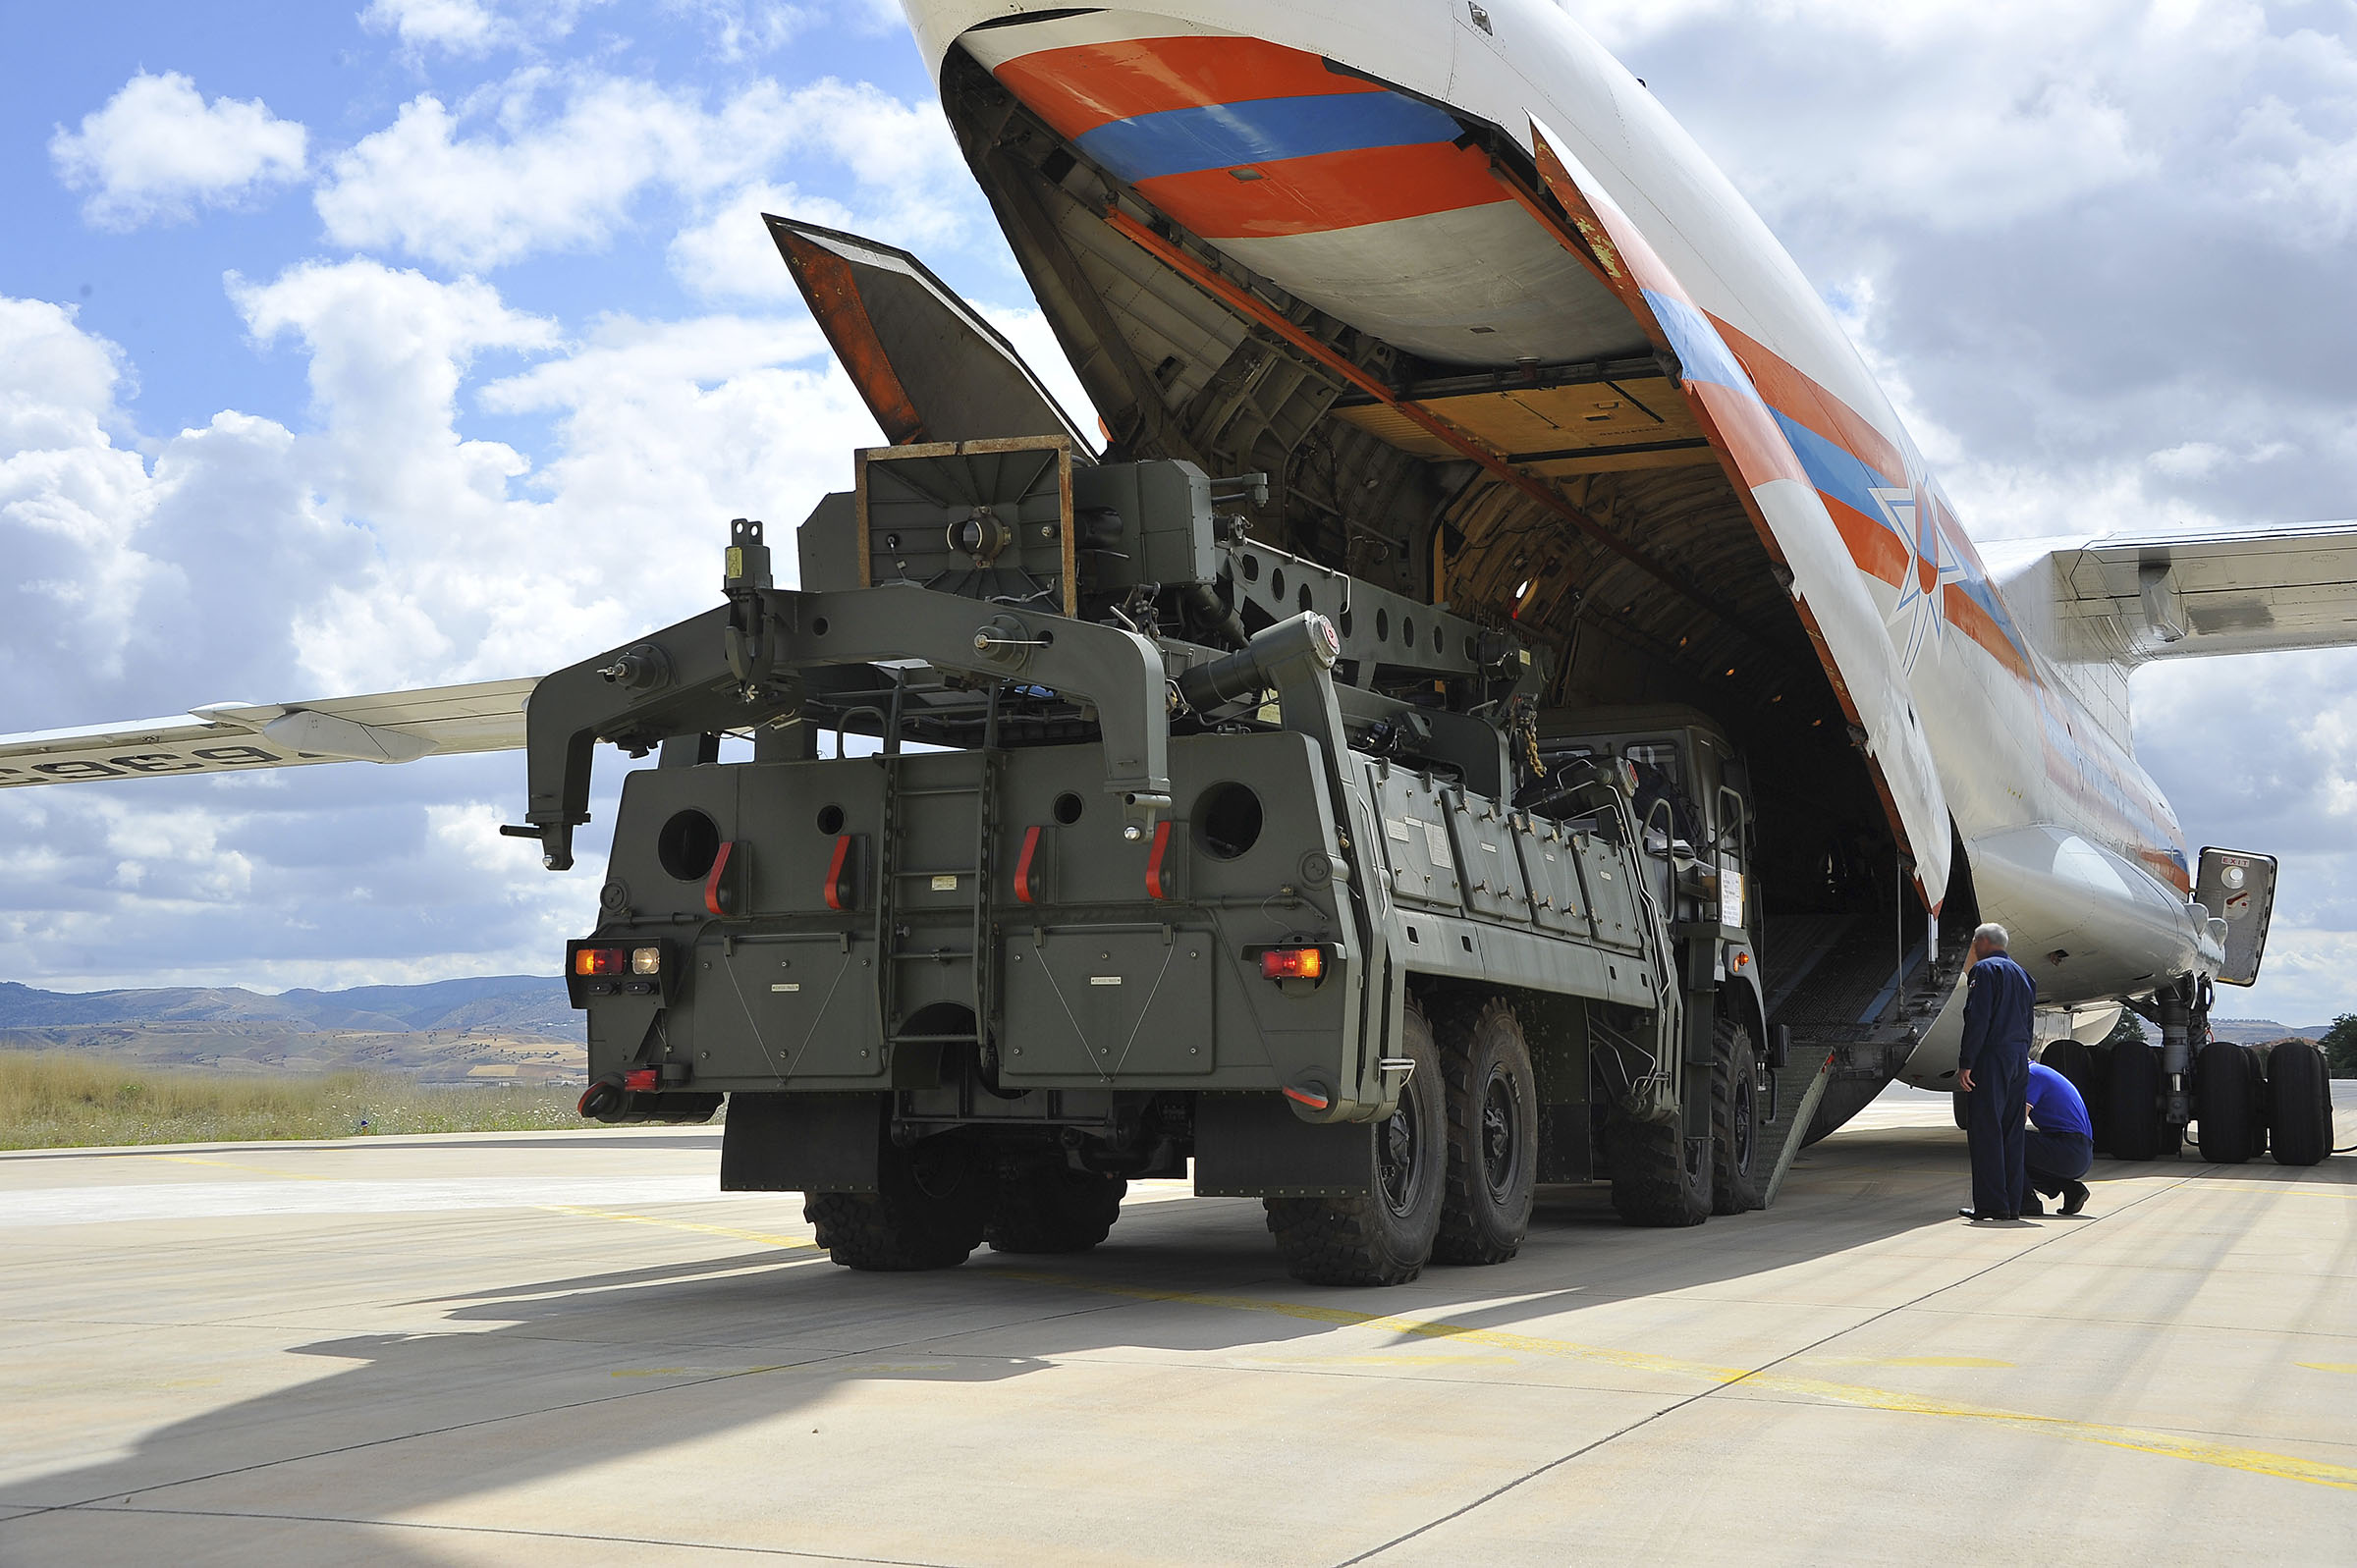 Military vehicles and equipment, parts of the S-400 air defense systems, are unloaded from a Russian transport aircraft, at Murted military airport in Ankara, Turkey on July 12, 2019.